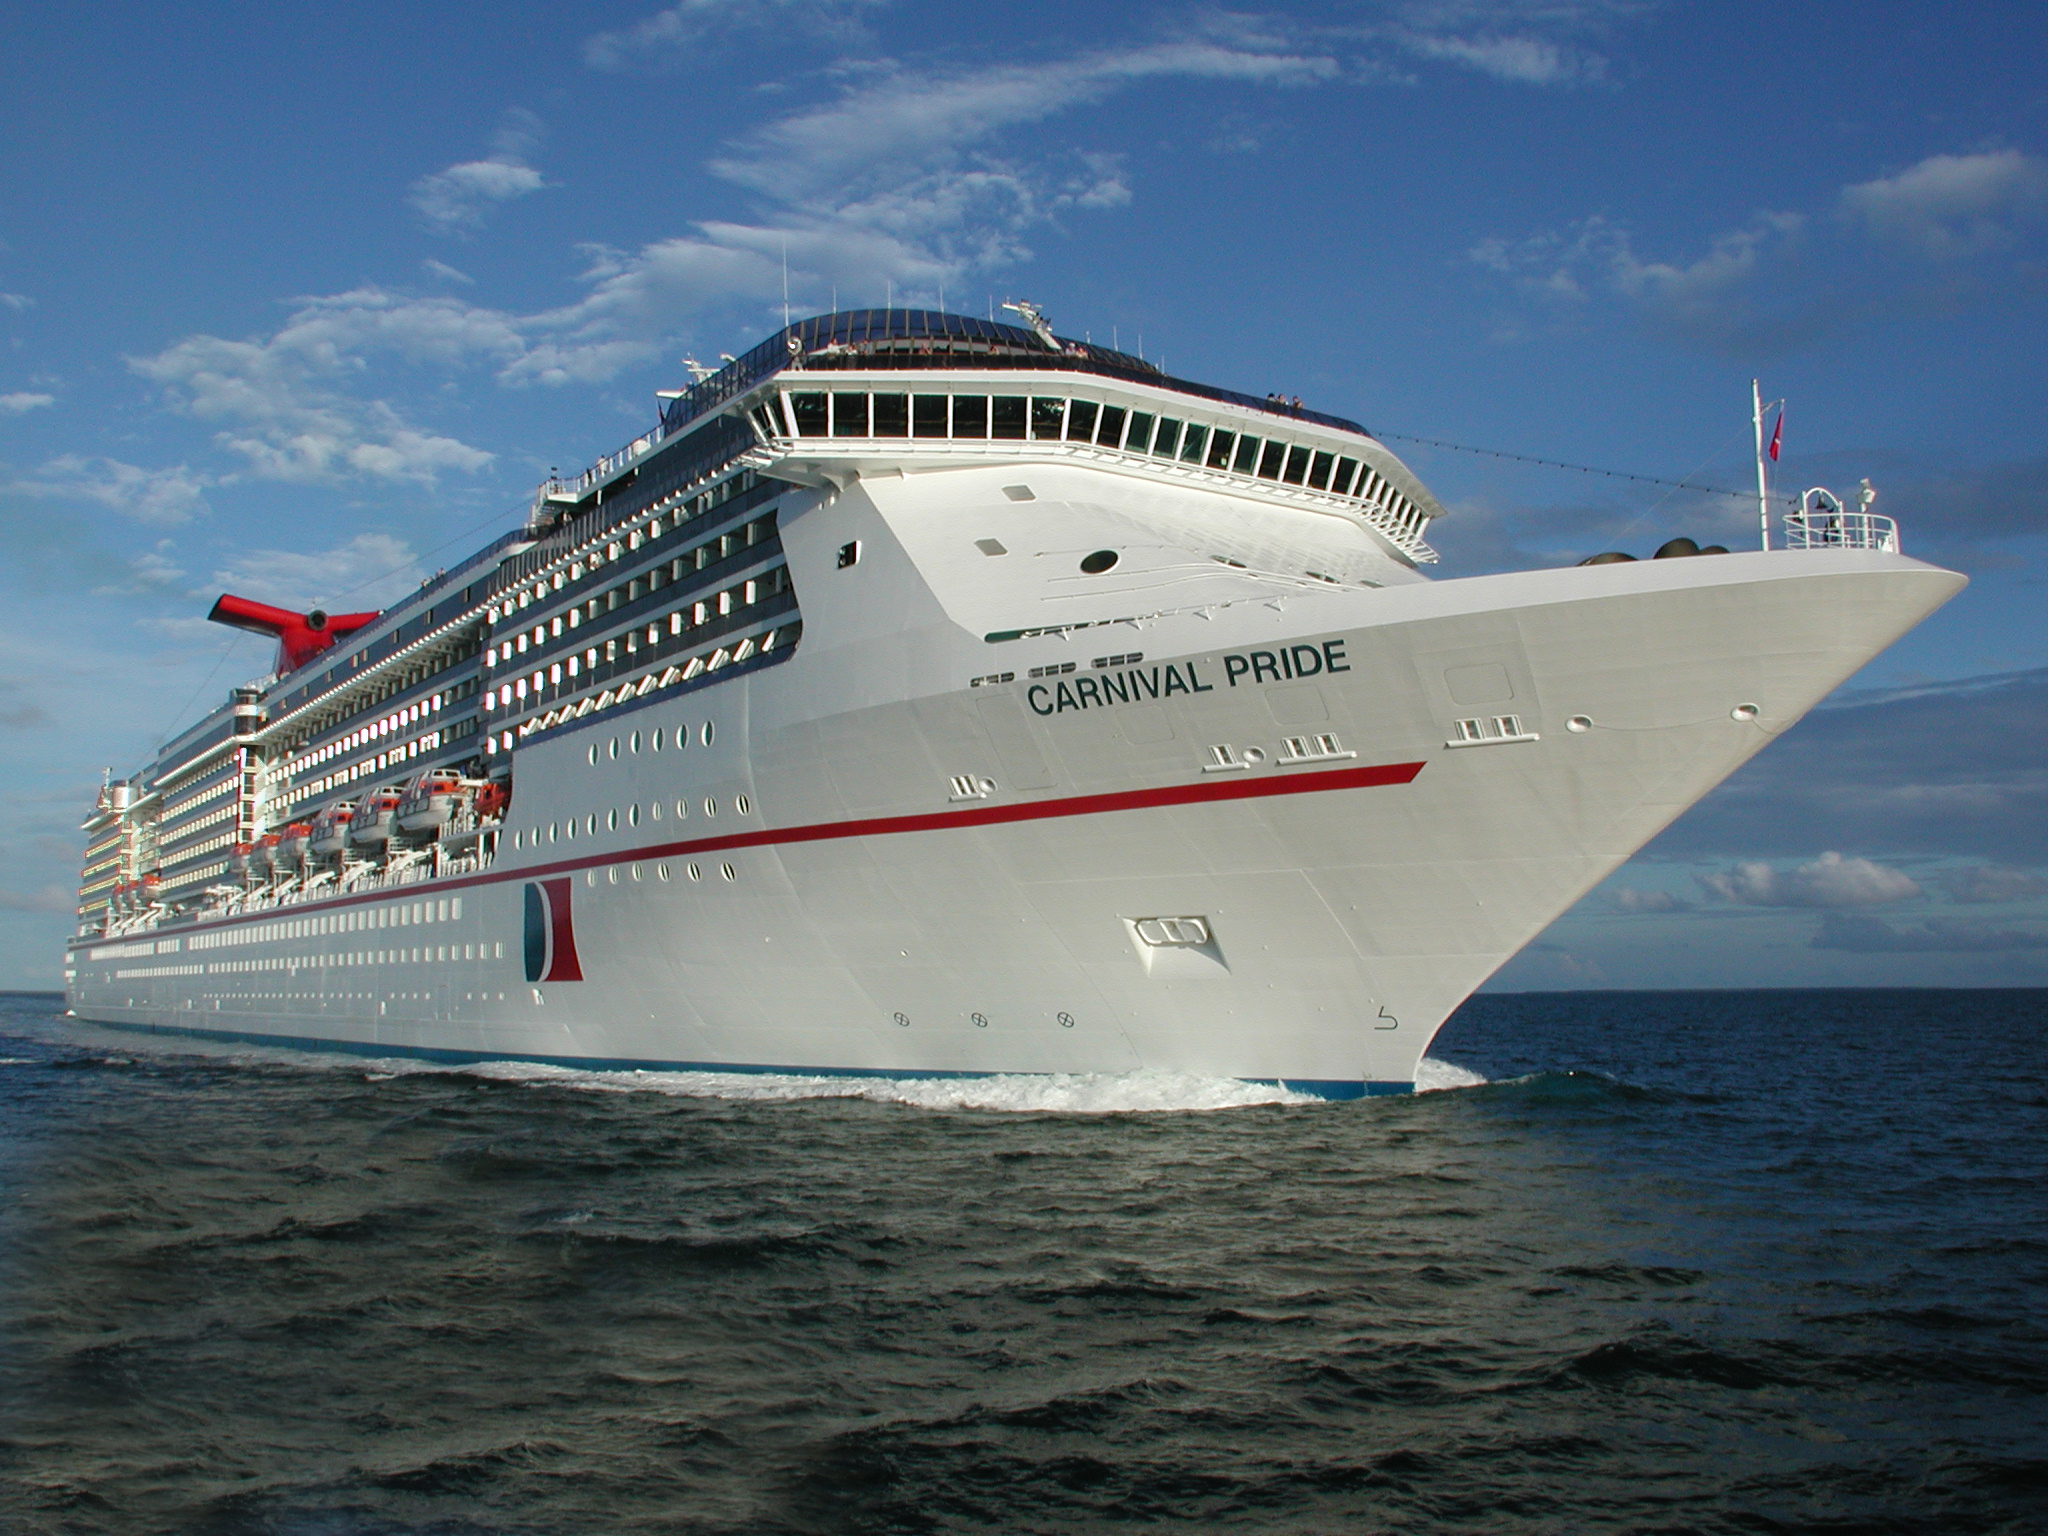 Carnival+pride+cruise+ship+photos